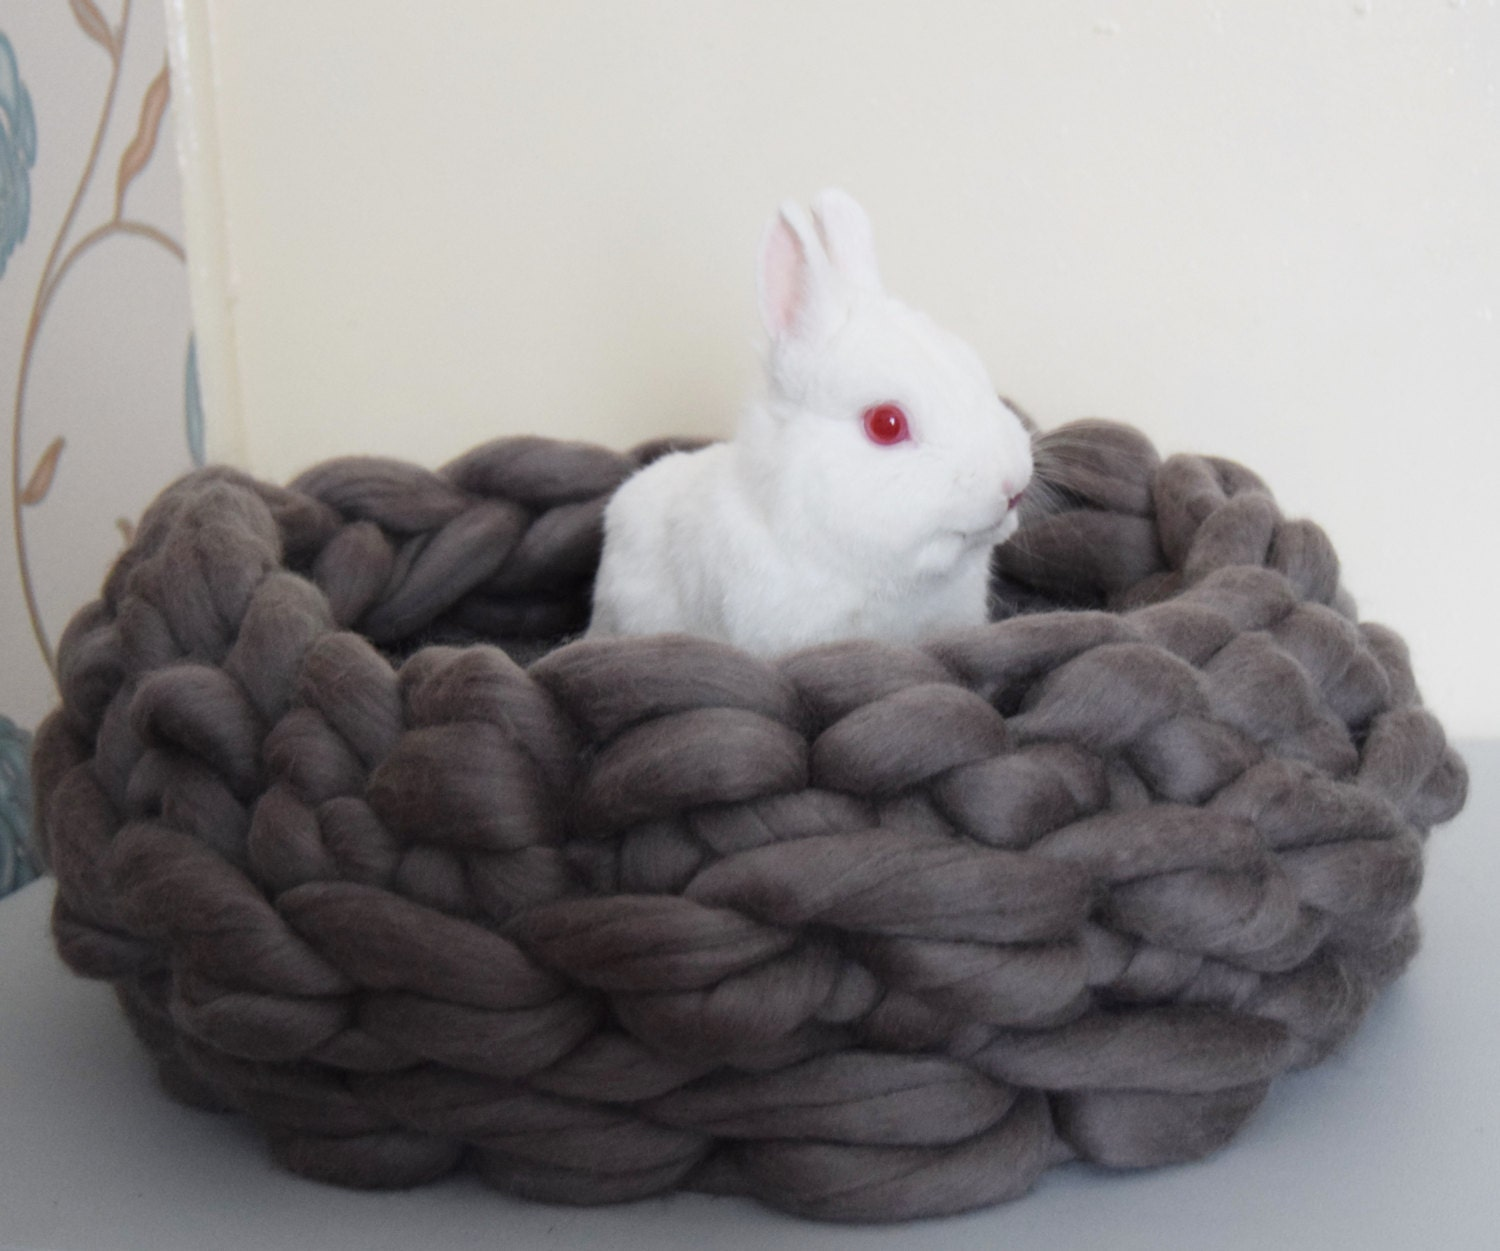 Knitting Patterns For Pet Beds : Chunky knitted pet bed 100% merino wool crocheted merino wool